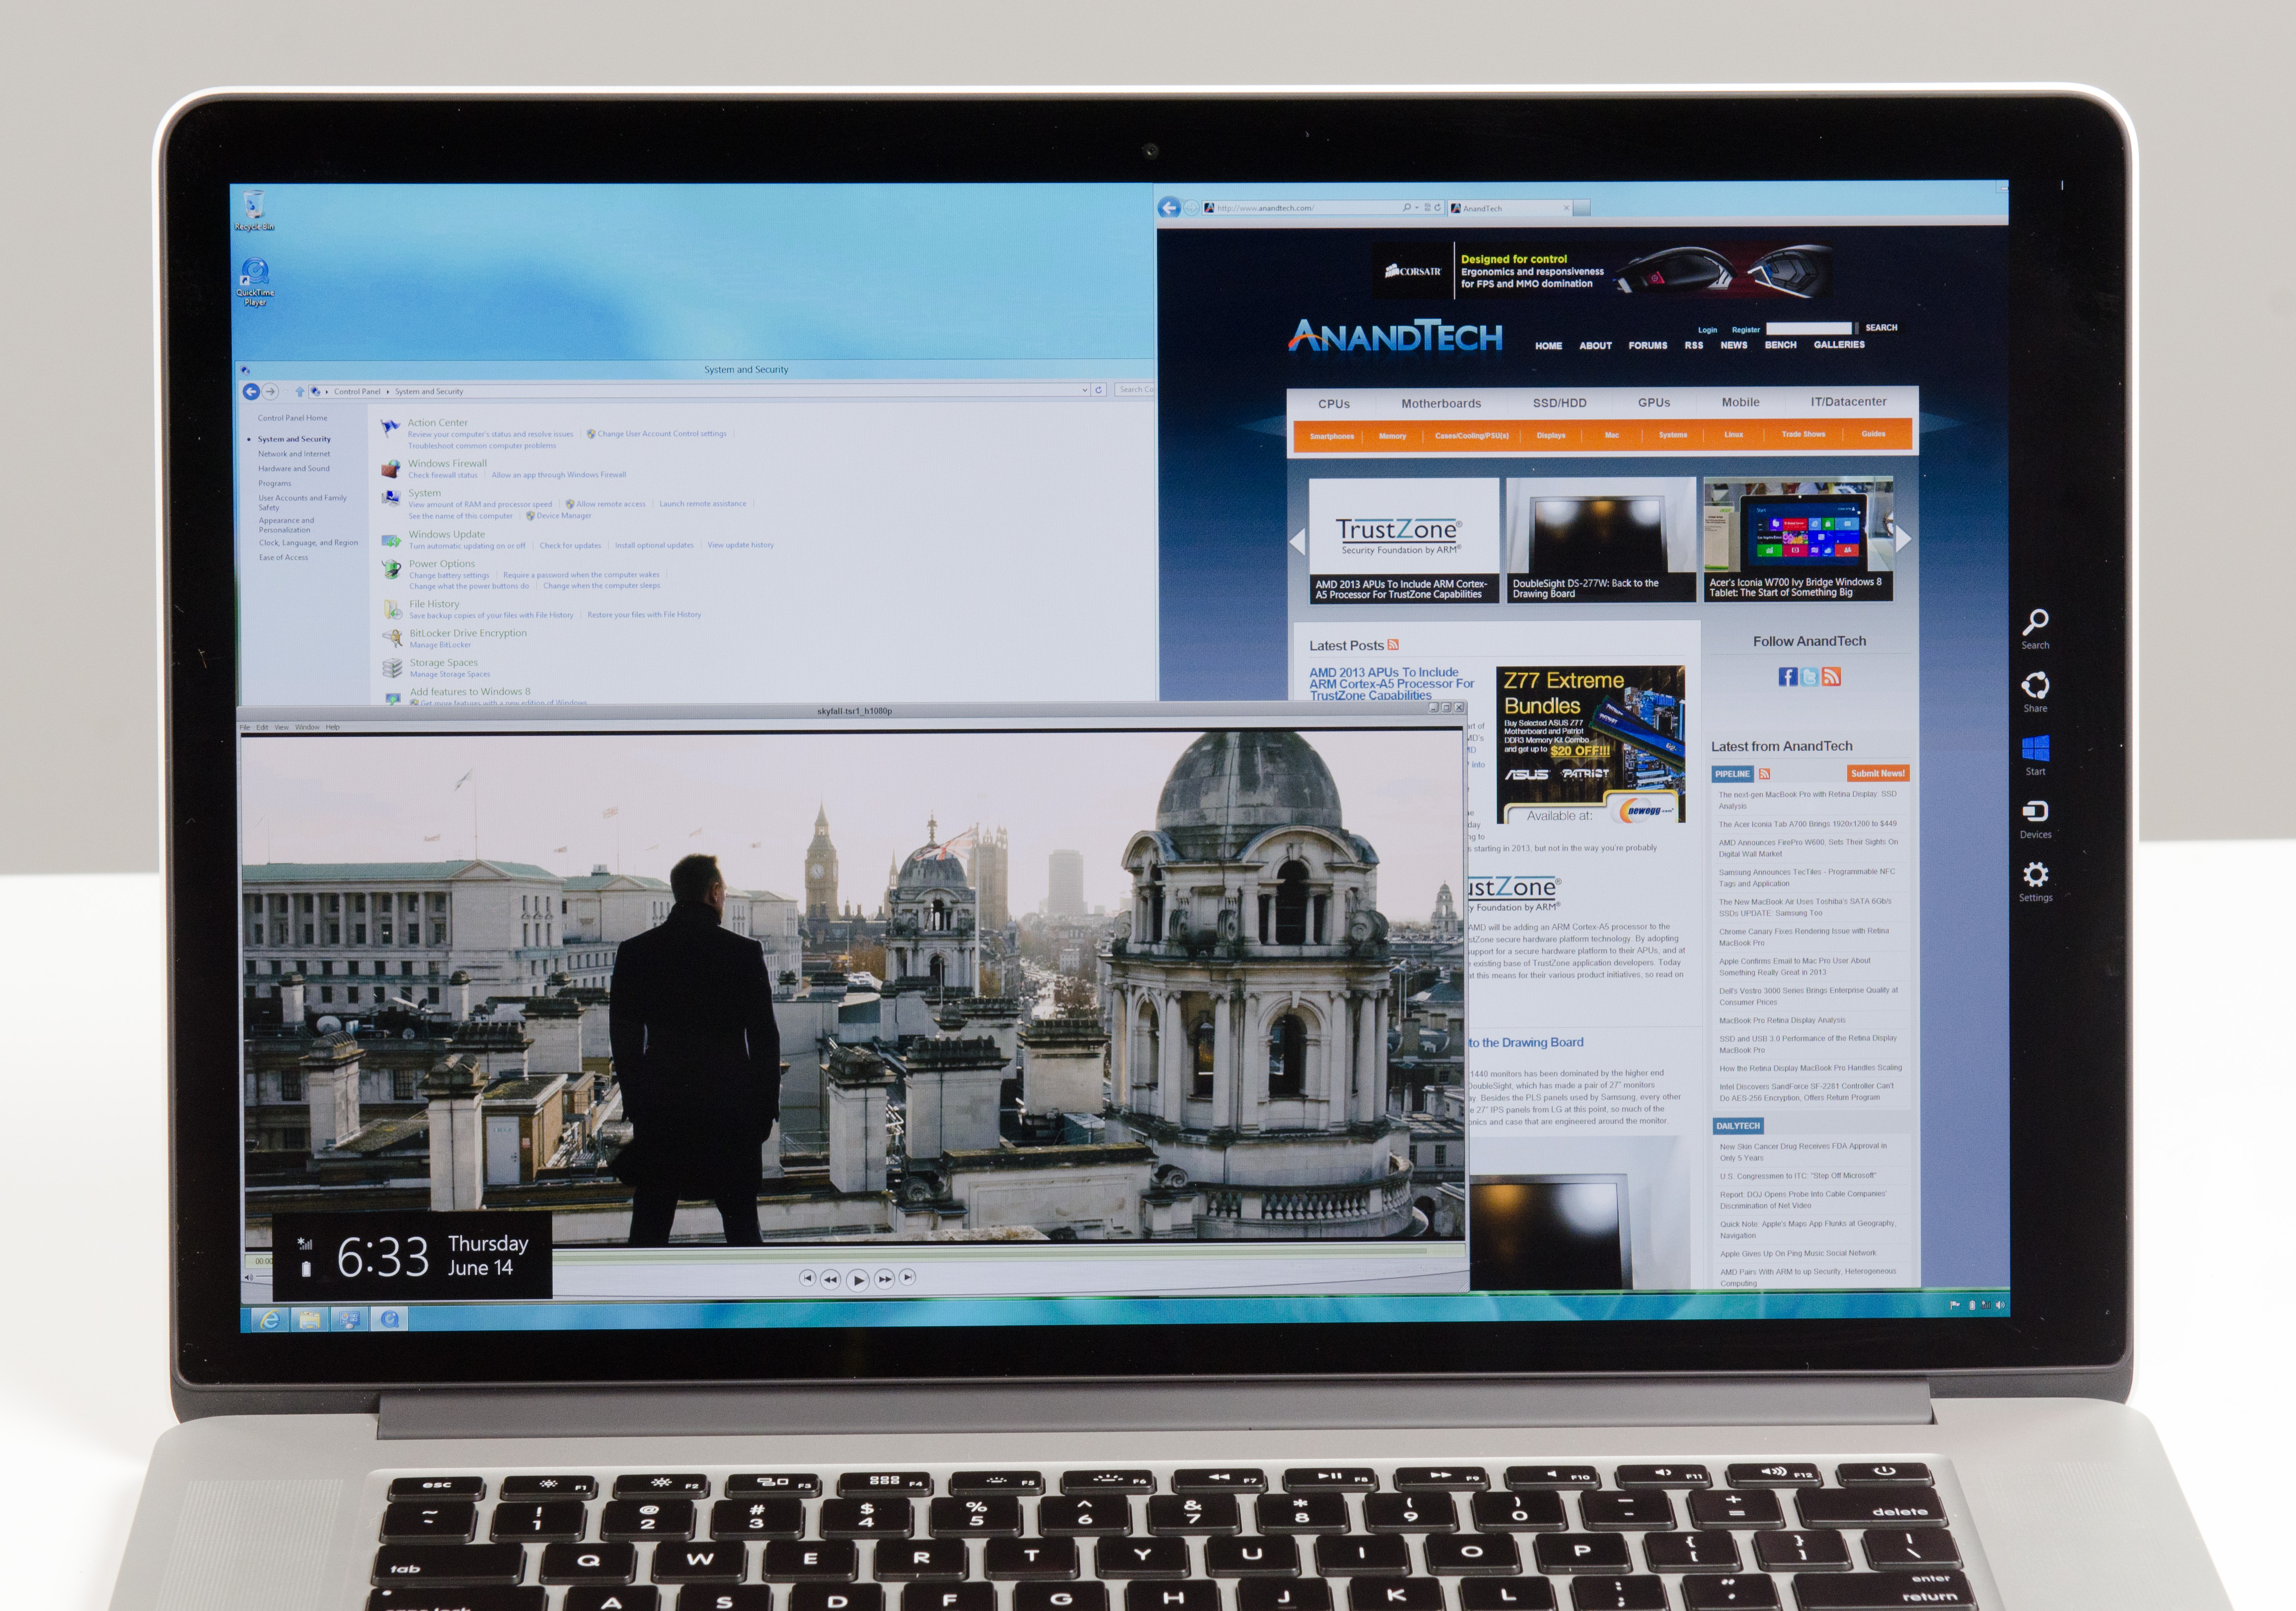 Windows 8 on the retina display macbook pro ccuart Image collections